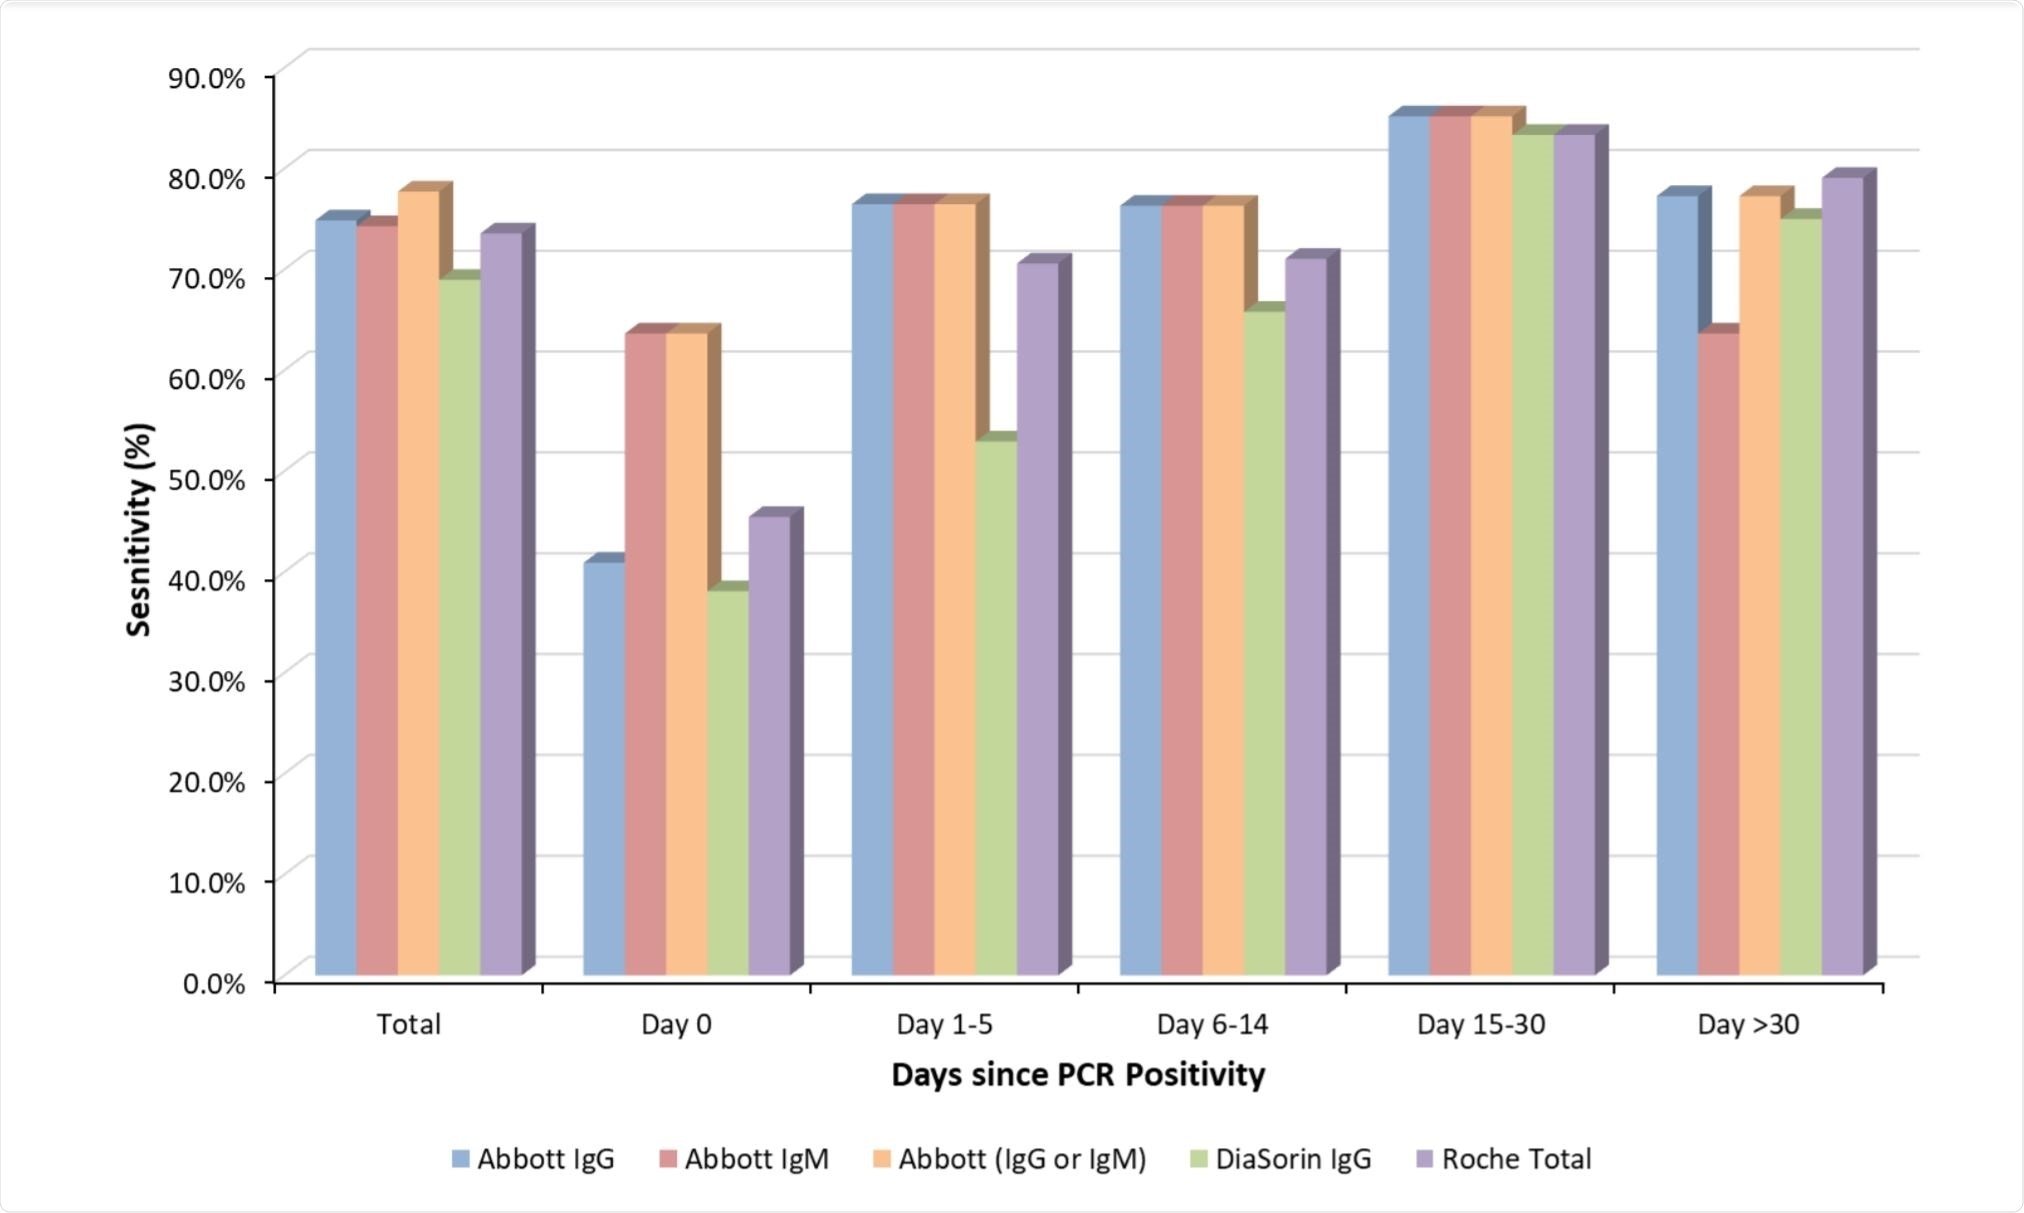 Total sensitivity and sensitivity for 0, 1-5, 6-14, 15-30, and />30 days since PCR positivity for four Abbott anti-SARS-CoV-2 IgG, Abbott anti-SARS-CoV-2 IgM, Abbott anti-SARS-CoV0-2 IgG and IgM together (either assay is positive), DiaSorin anti-SARS-CoV-2 IgG, and Roche anti-SARS-CoV-2 total